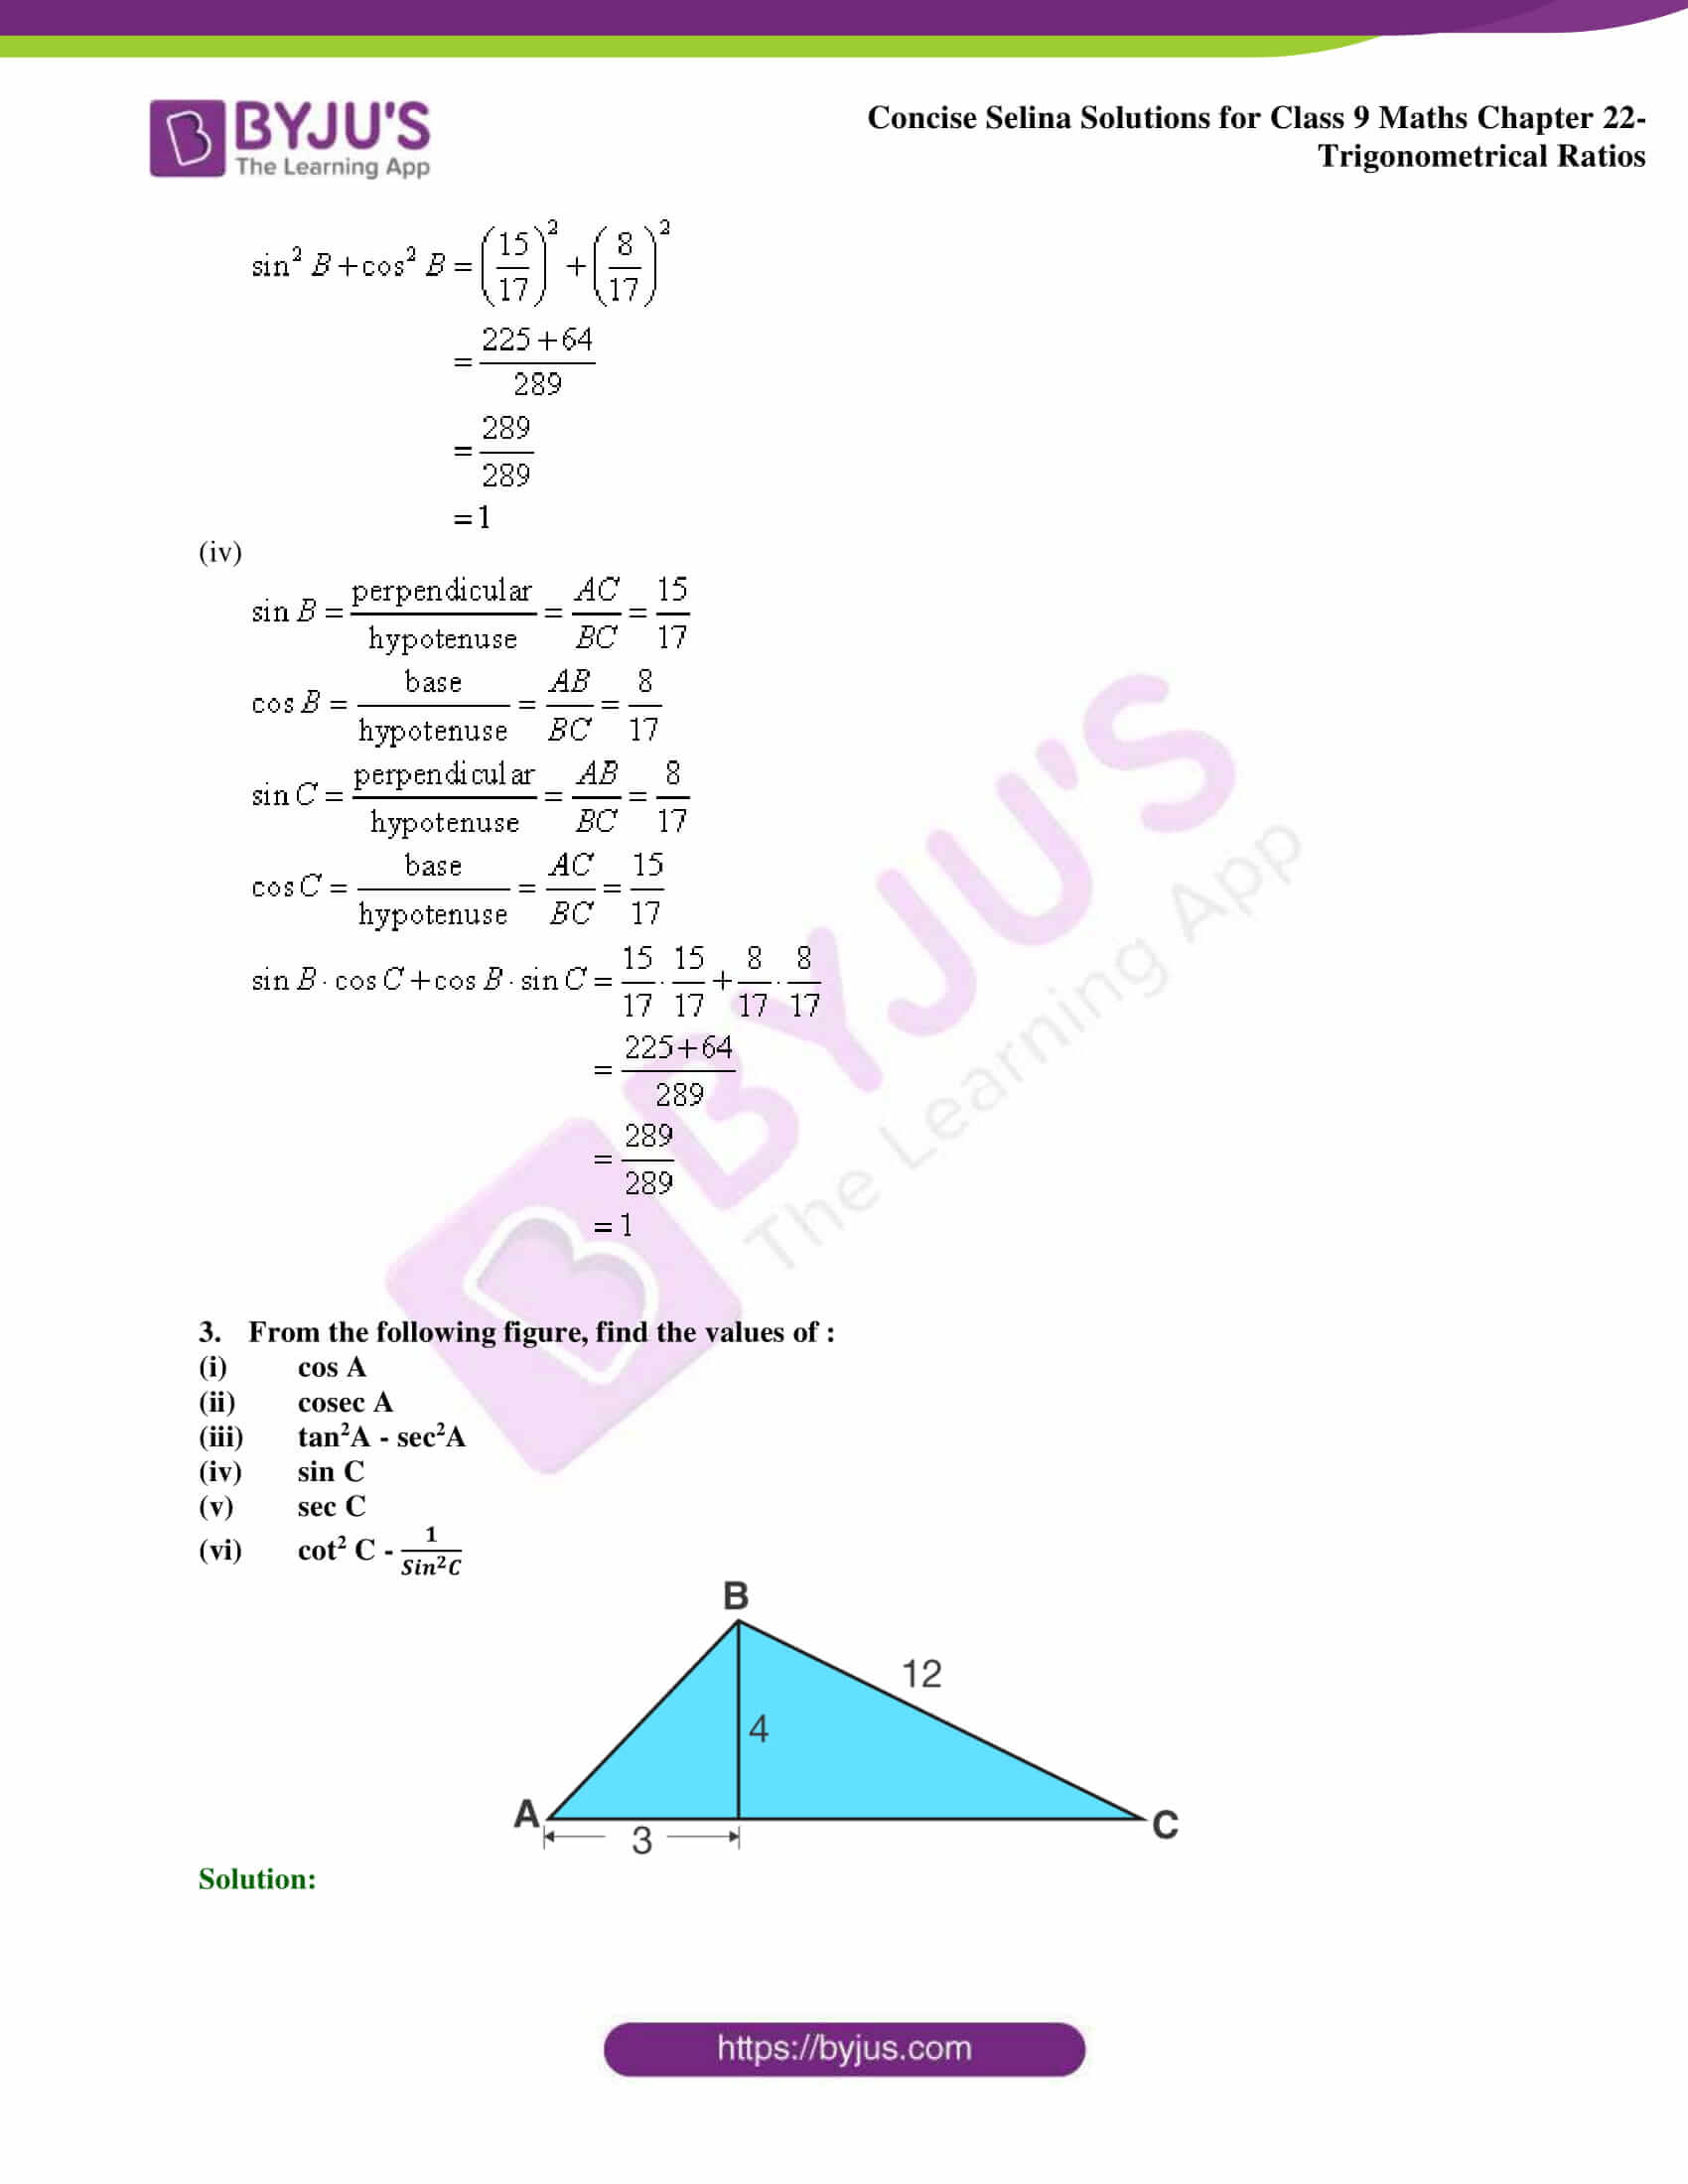 Concise Selina Solutions Class 9 Maths Chapter 22 Trigonometrical Ratios part 03